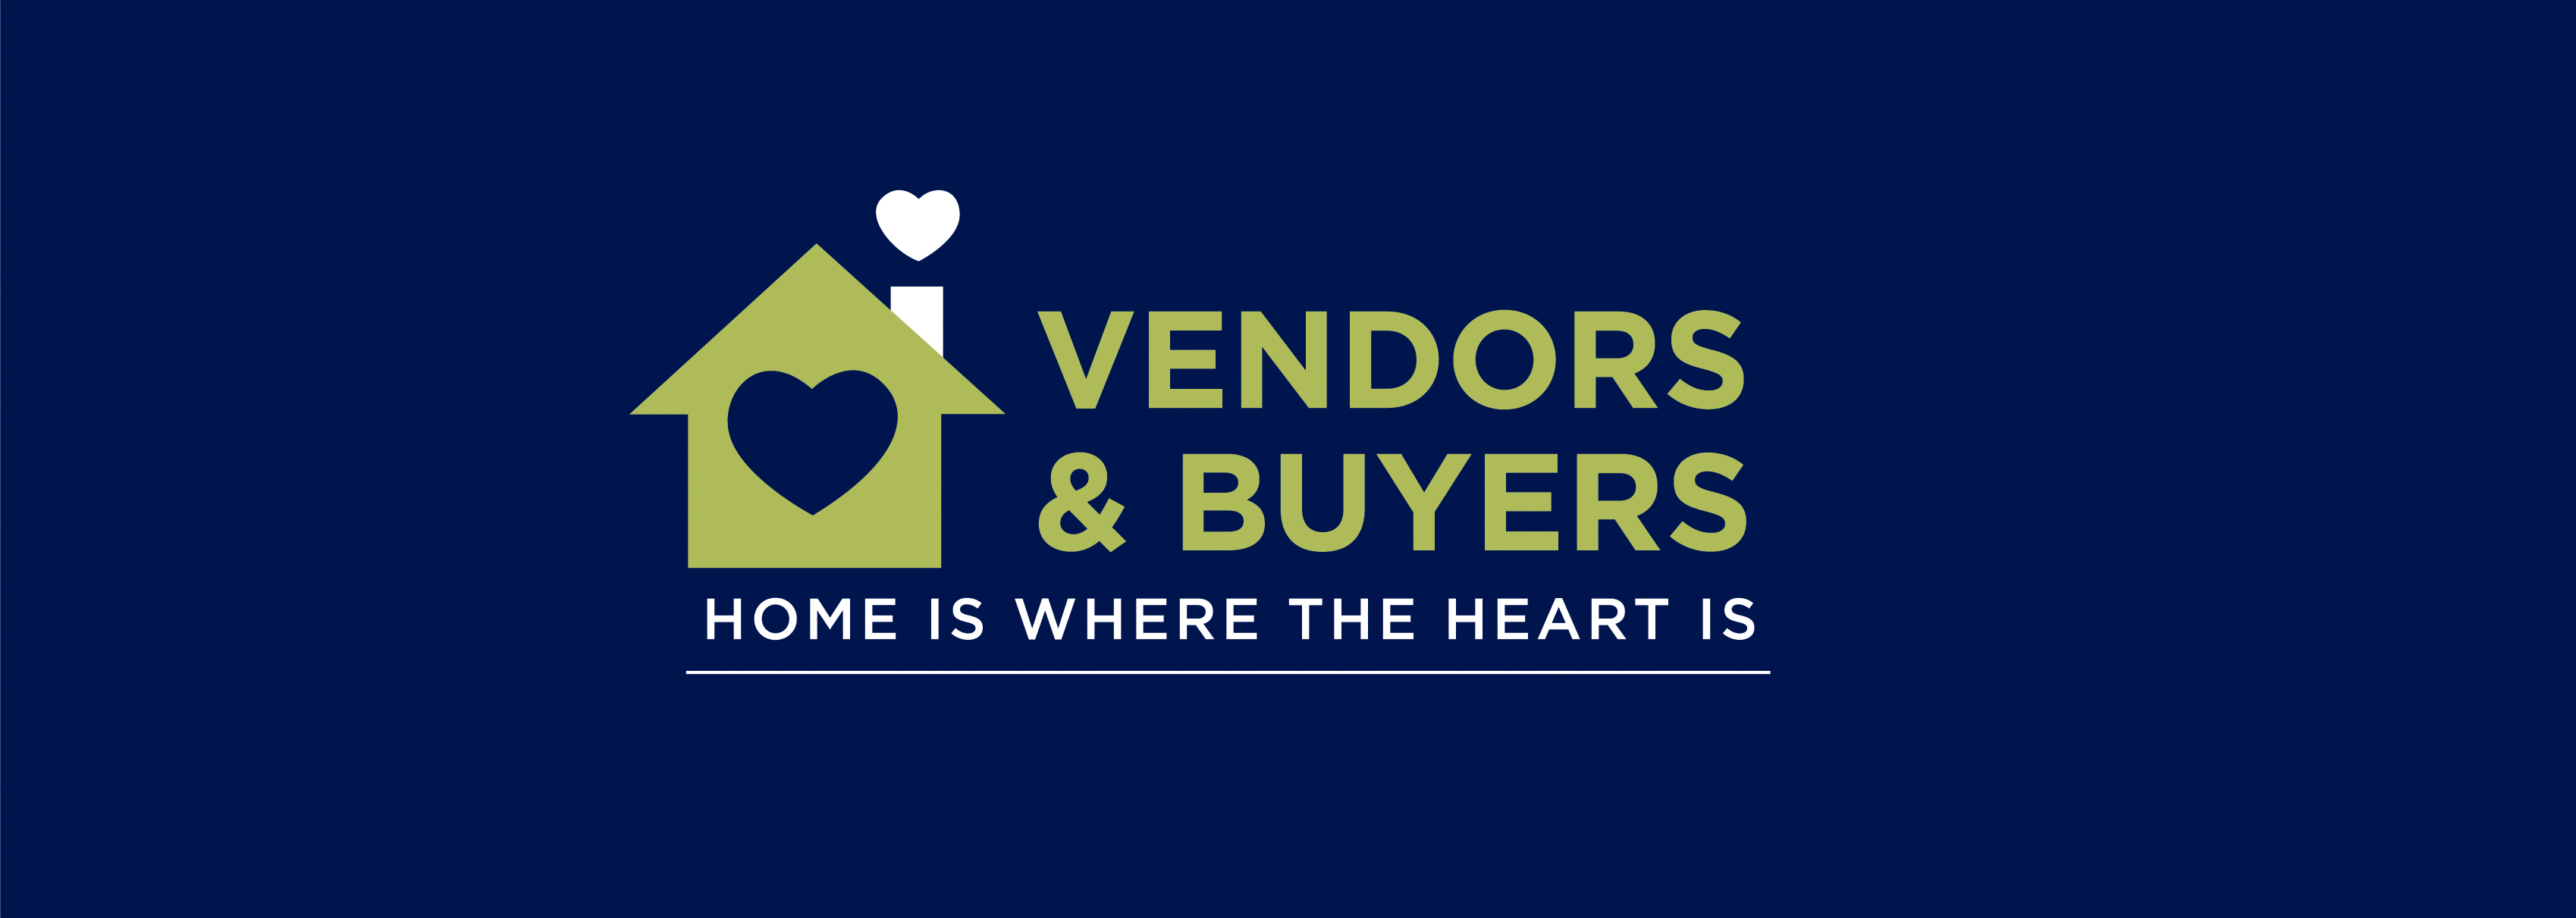 Vendors and Buyers